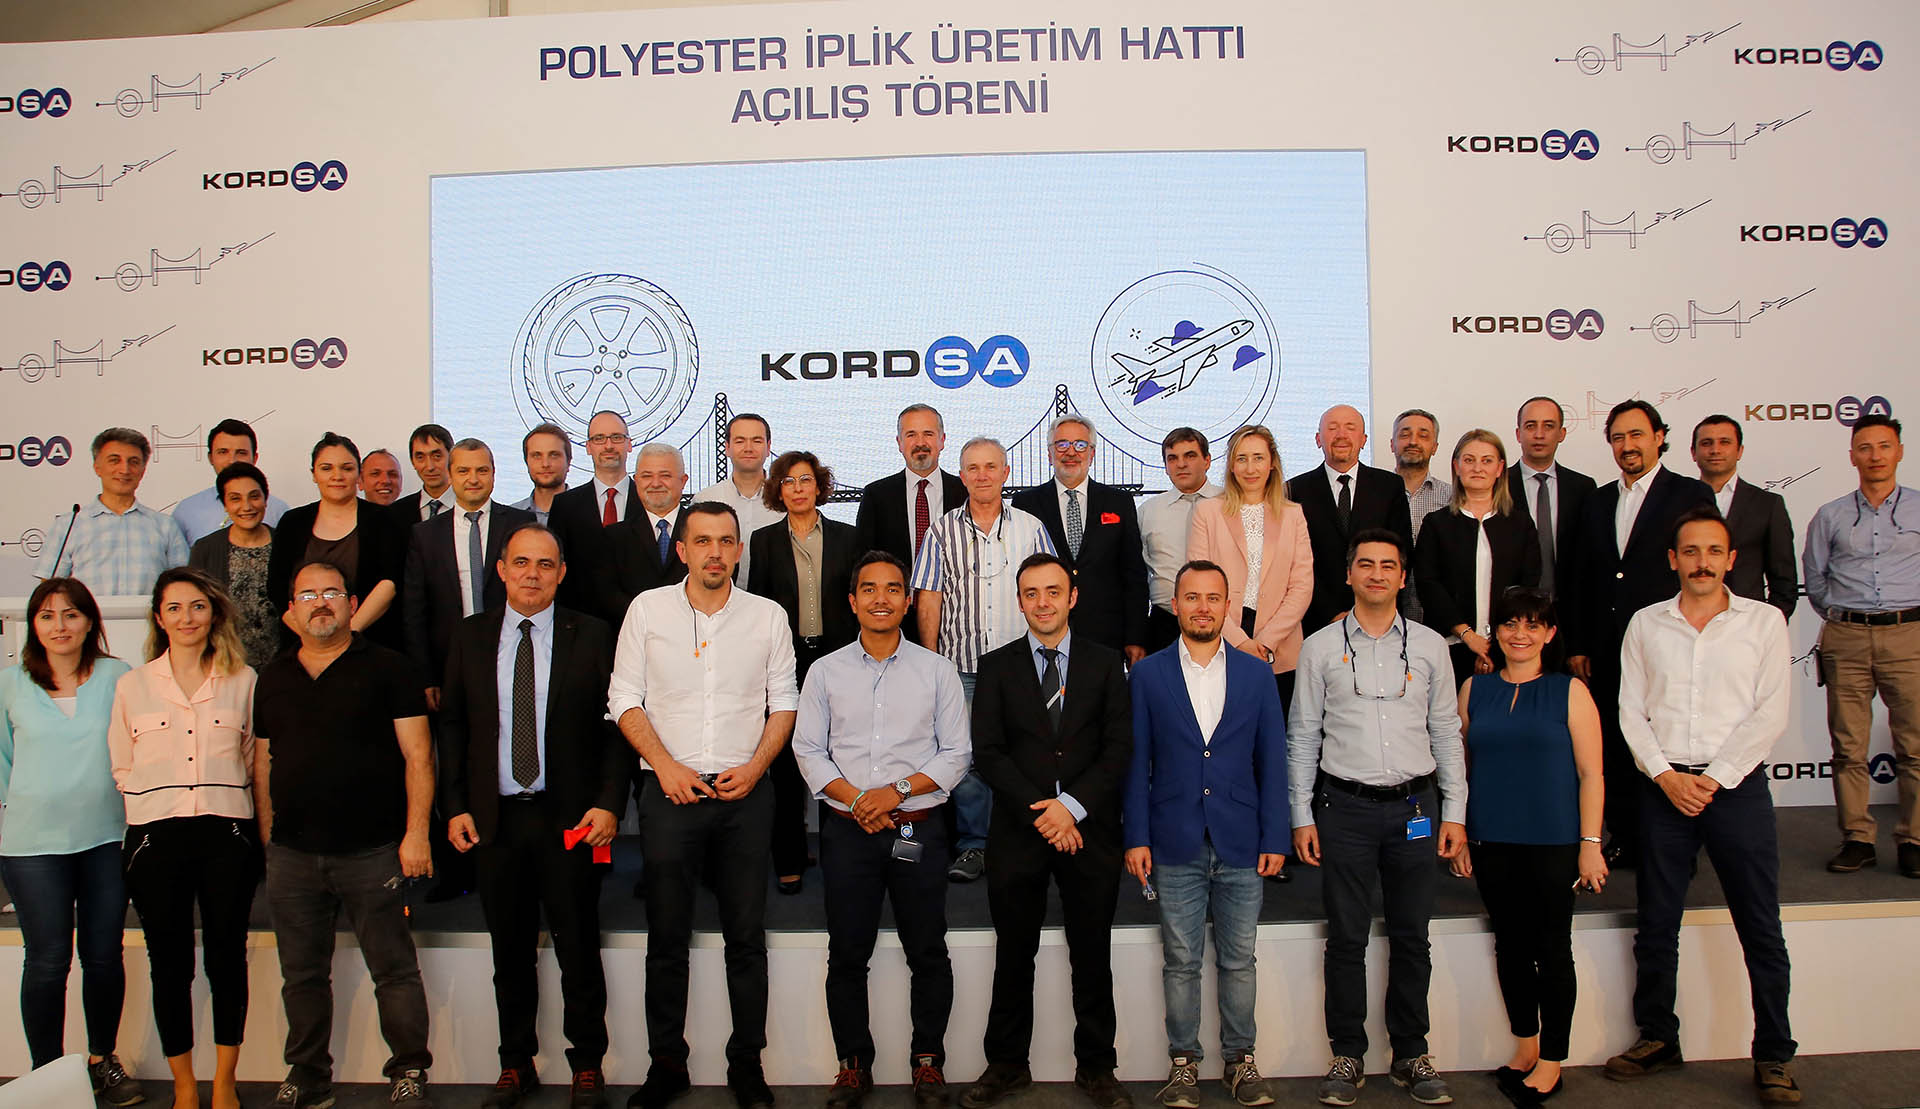 Kordsa puts into operation the USD 18 million worth additional polyester yarn line at İzmit plant